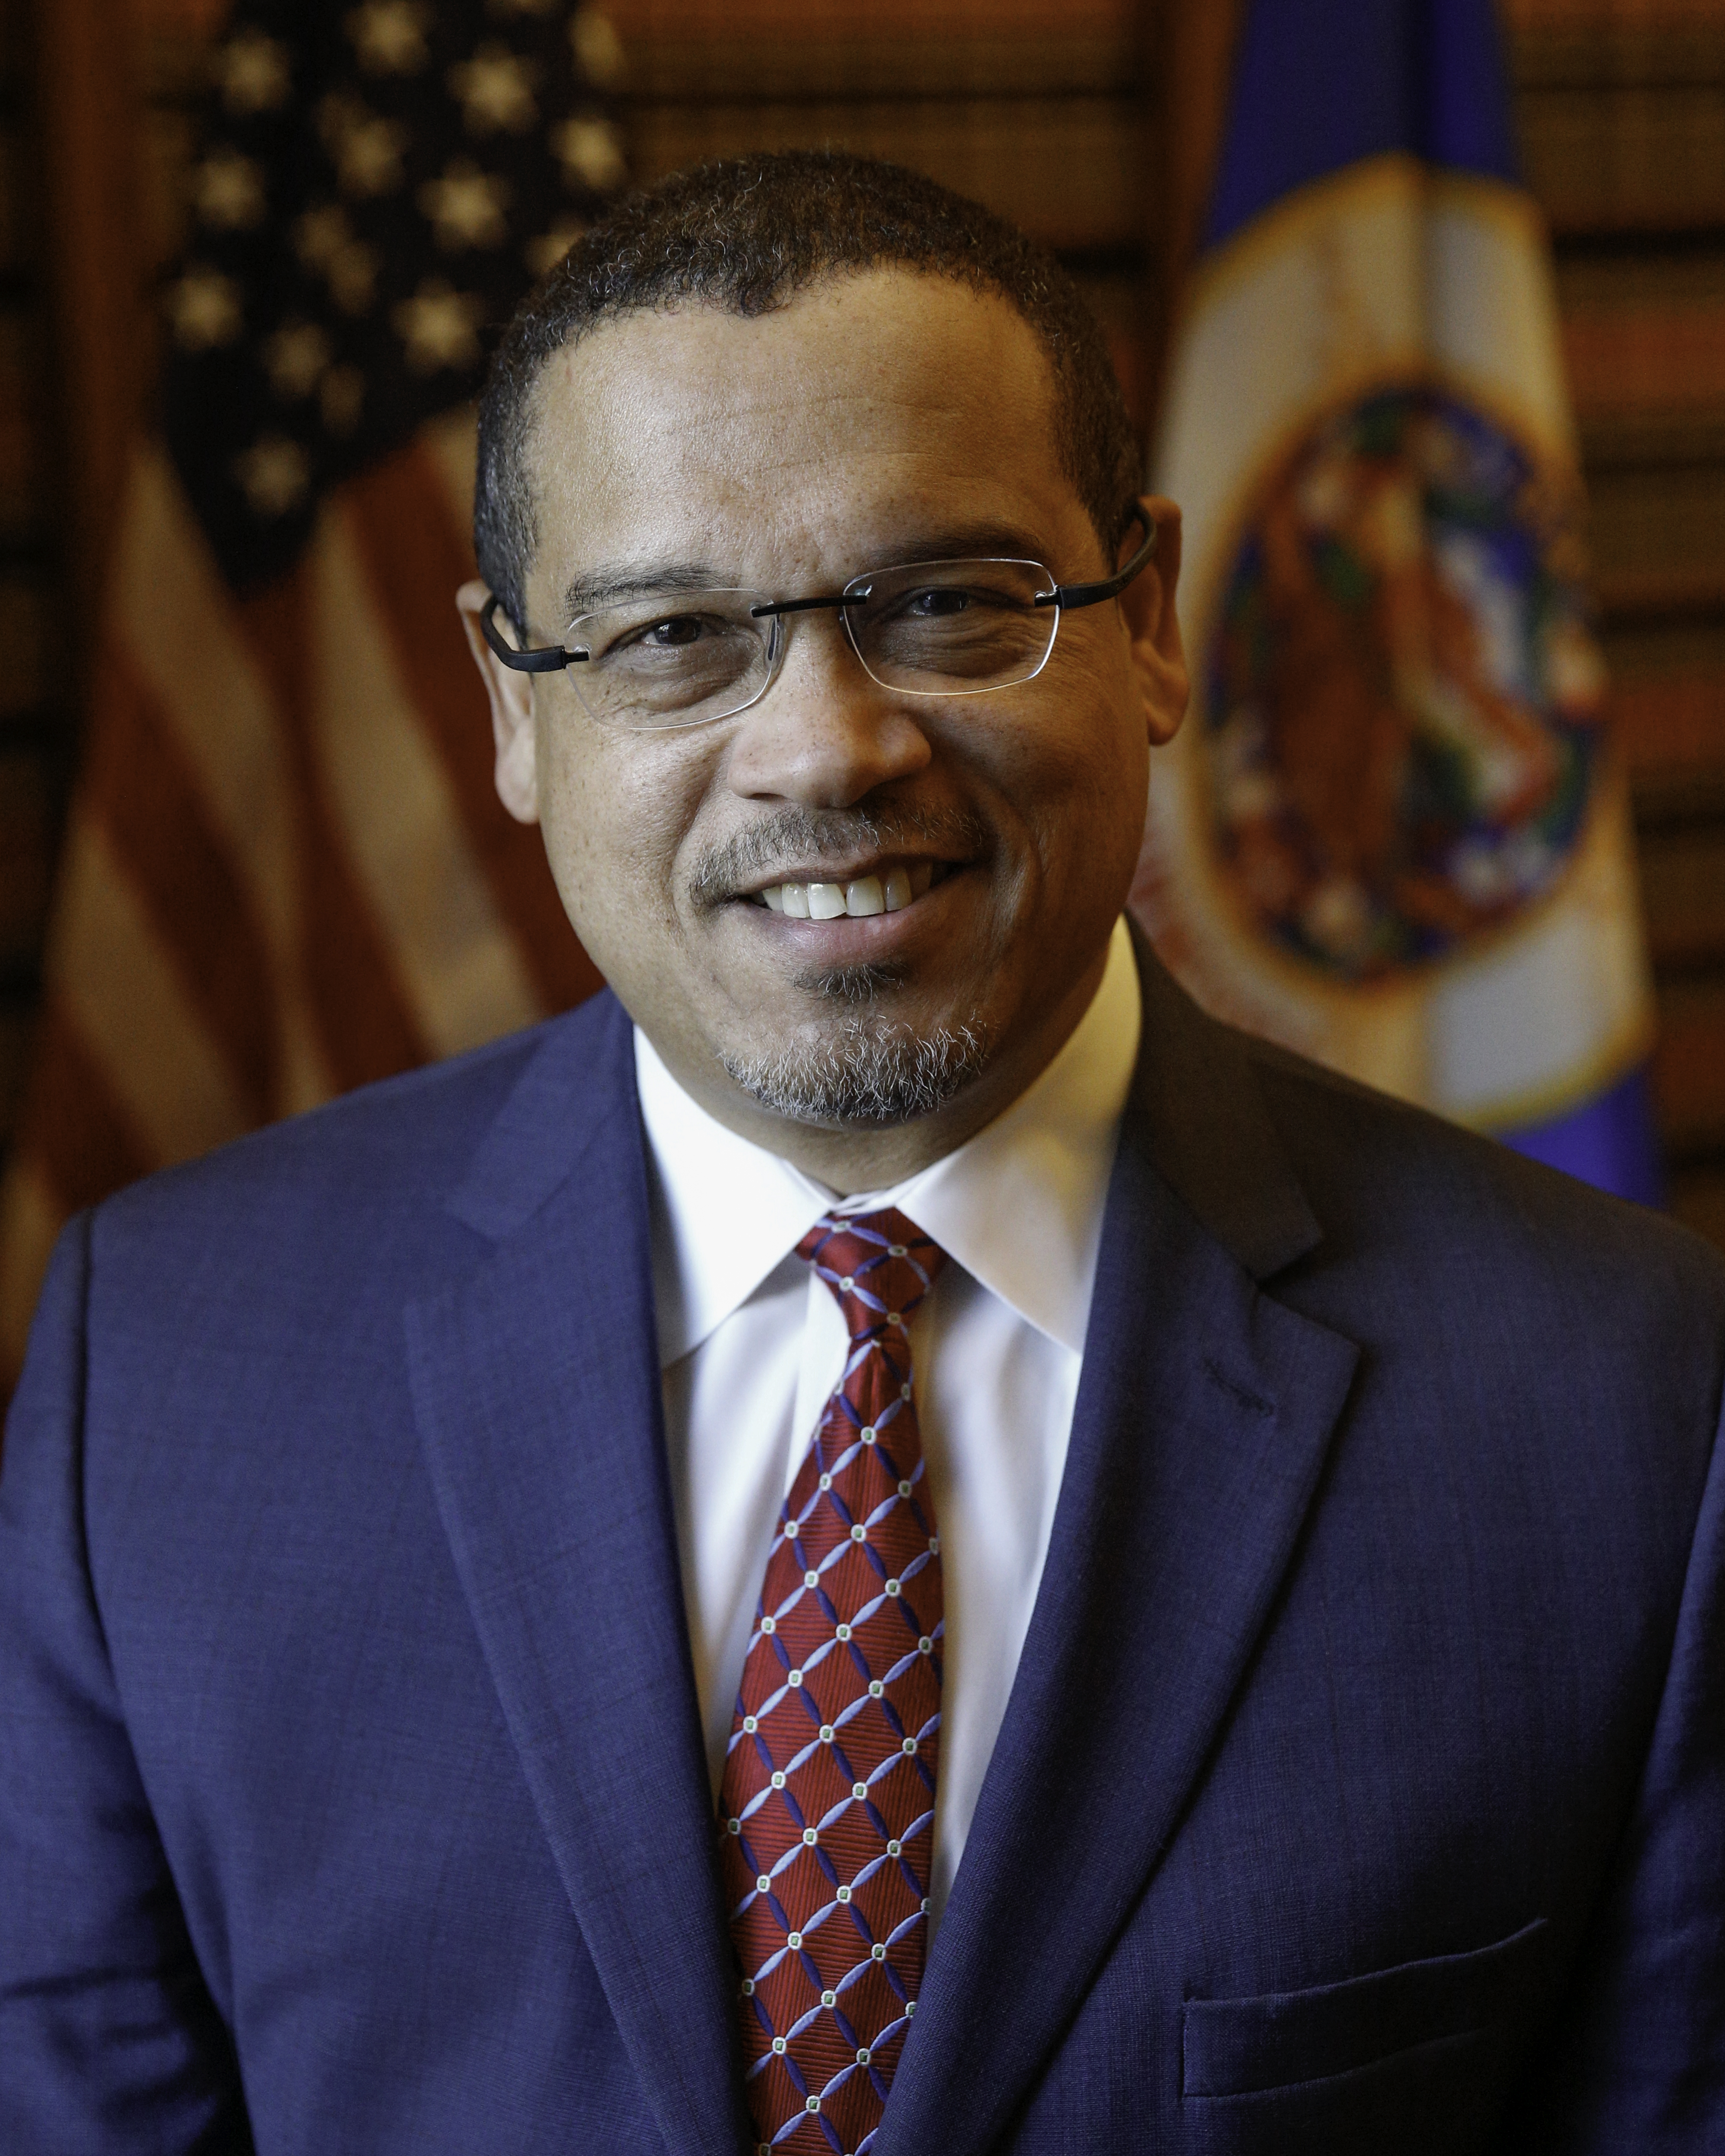 Portrait of Minnesota Attorney General Keith Ellison